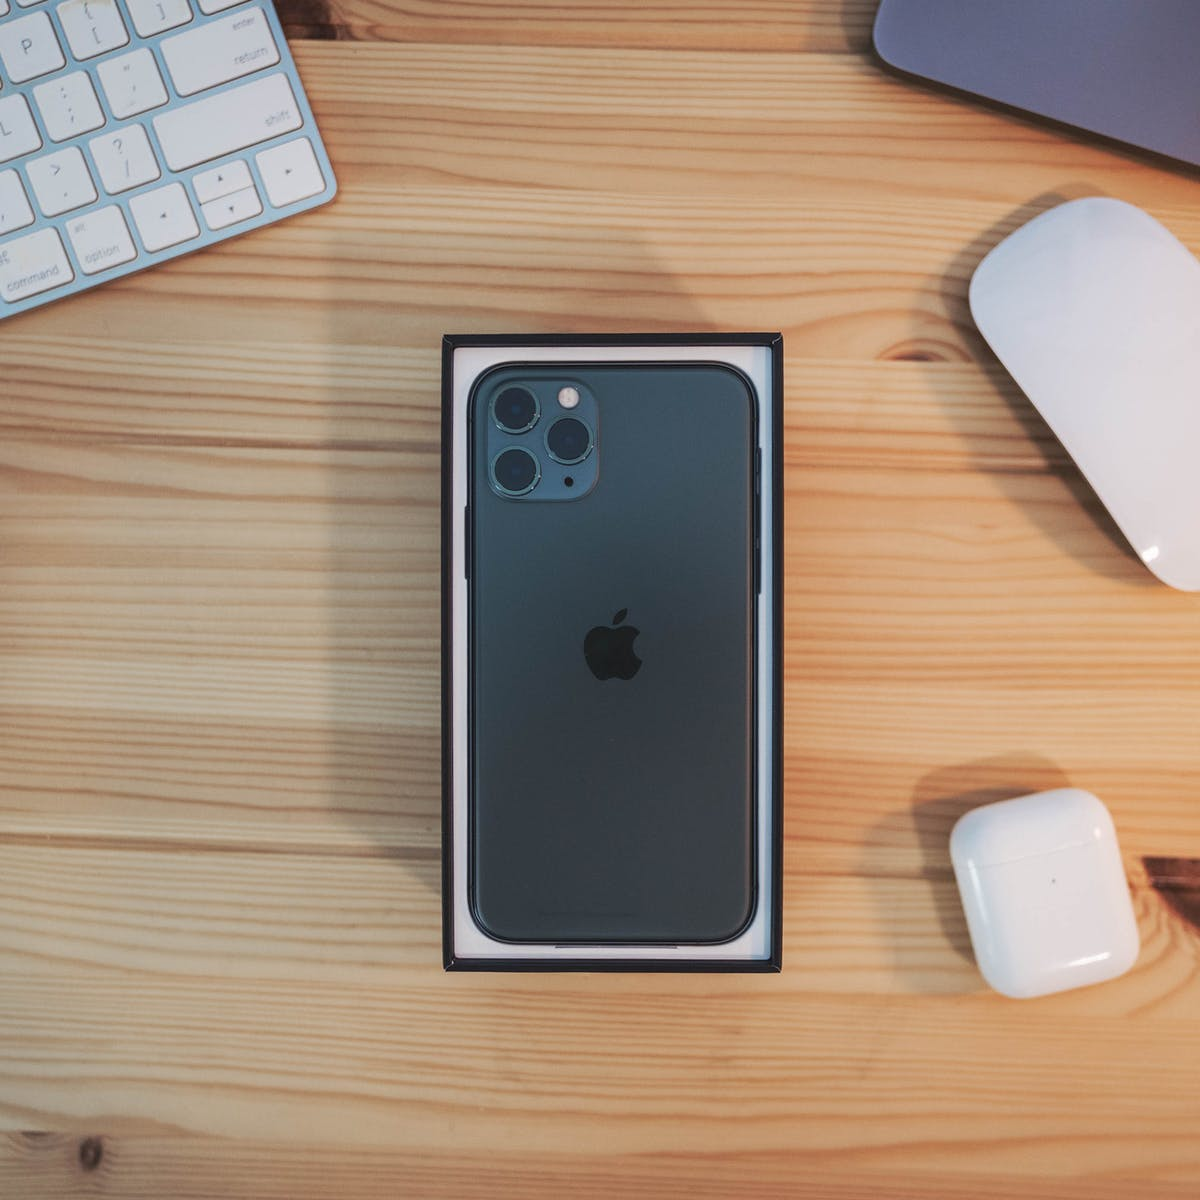 iPhone 2020: Apple's next smartphone may bring back a much-loved feature